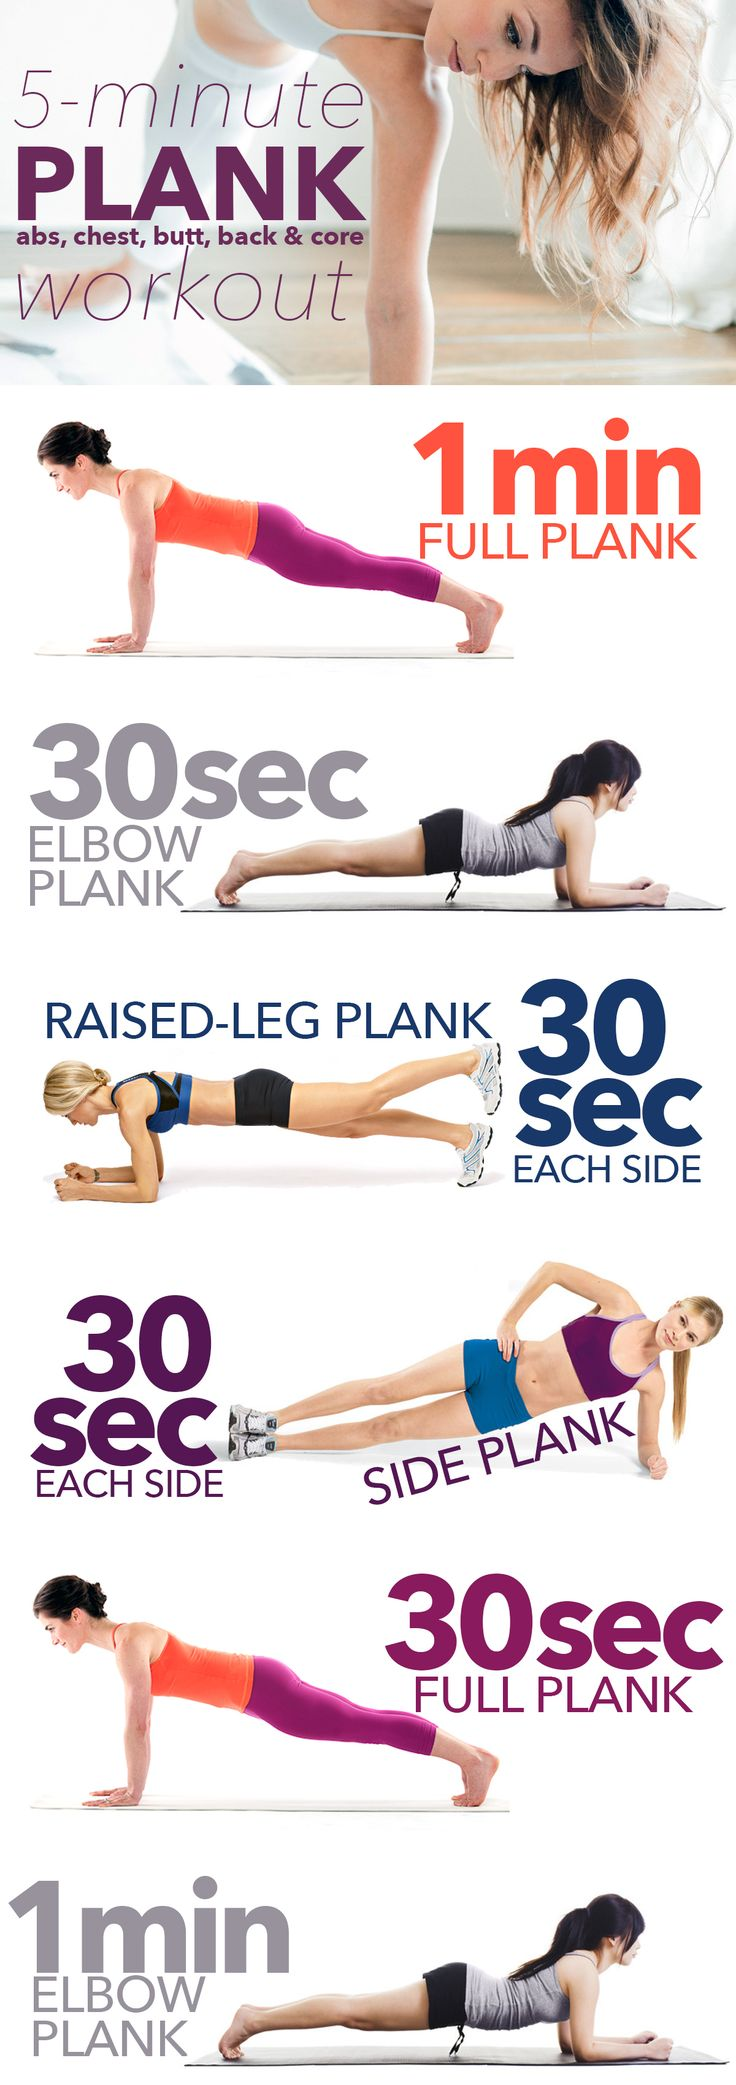 5-minute-plank-workout-infographic.jpg 1 200×3 400 пикс